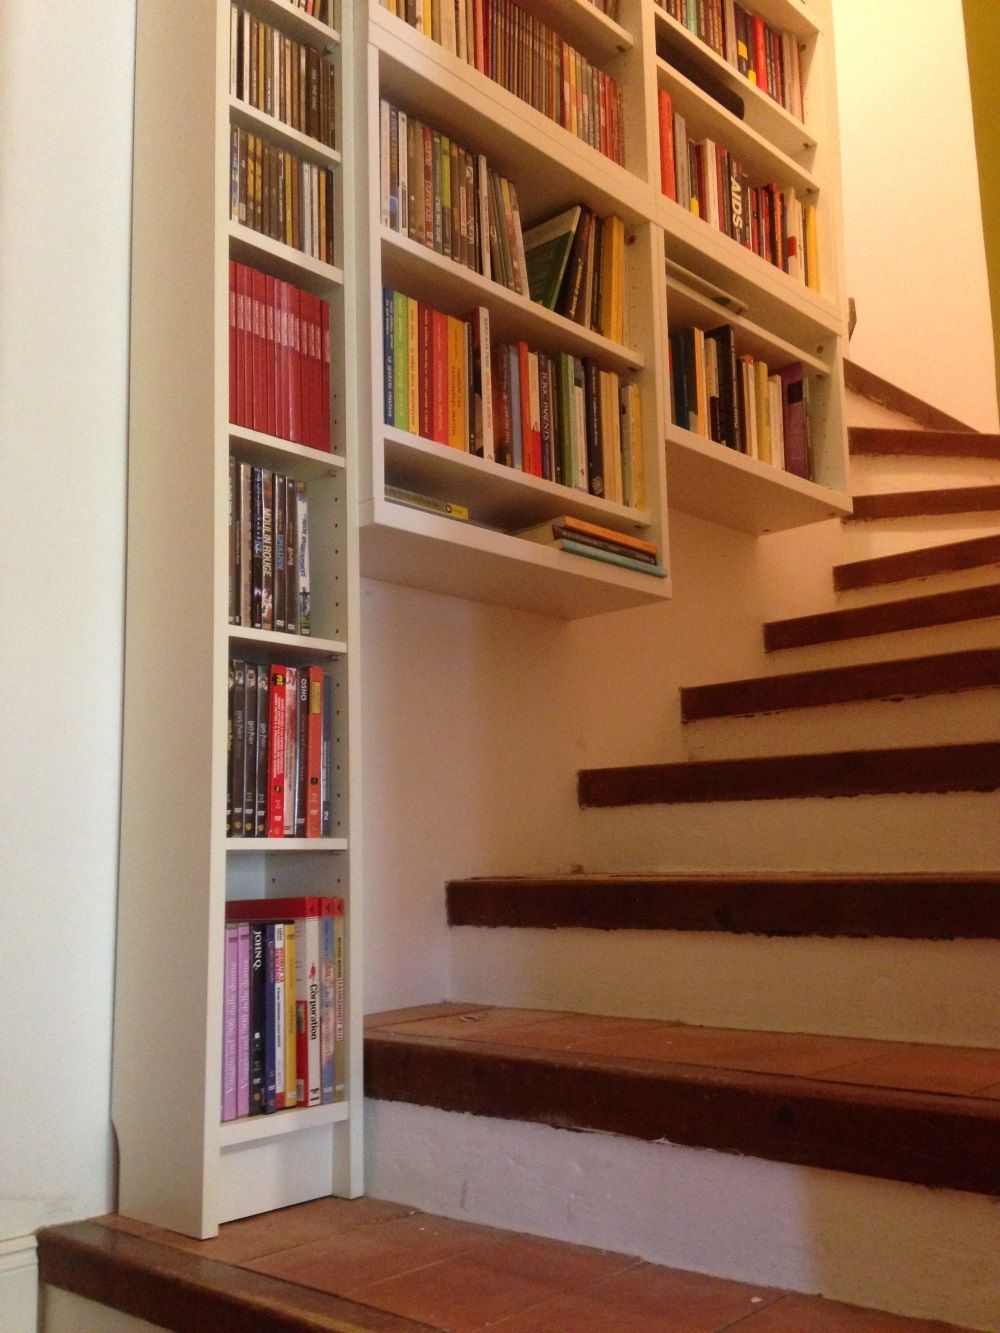 IKEA Benno and Besta floating shelves on stairs | Ikea hack ideas ...